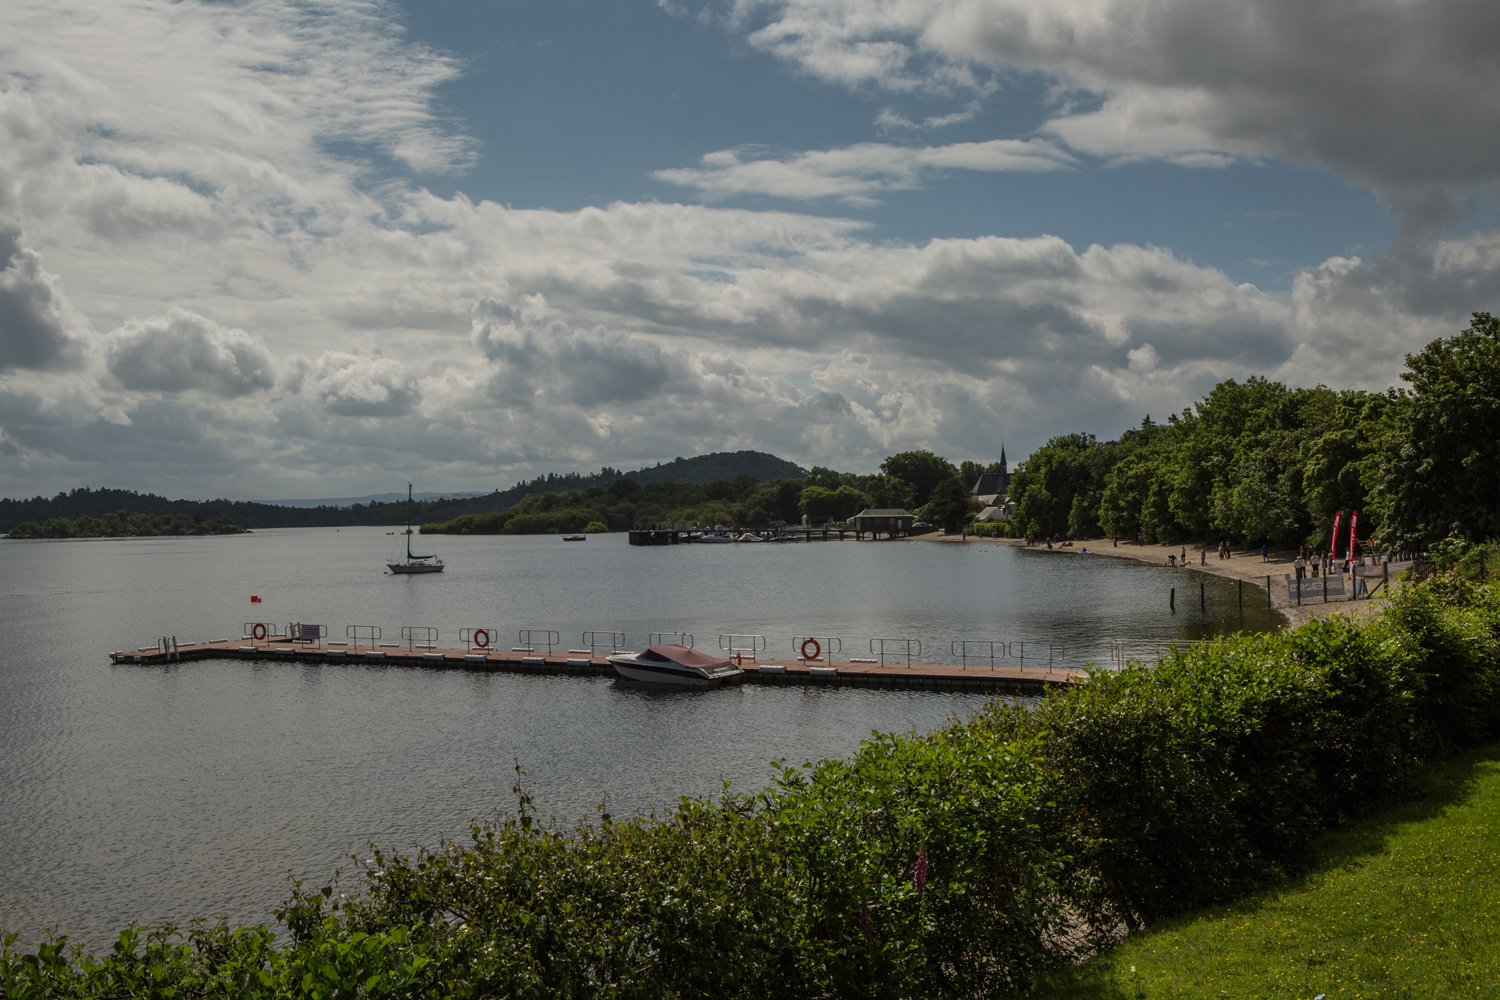 Wedding-photography-Lodge-on-The-Loch-001